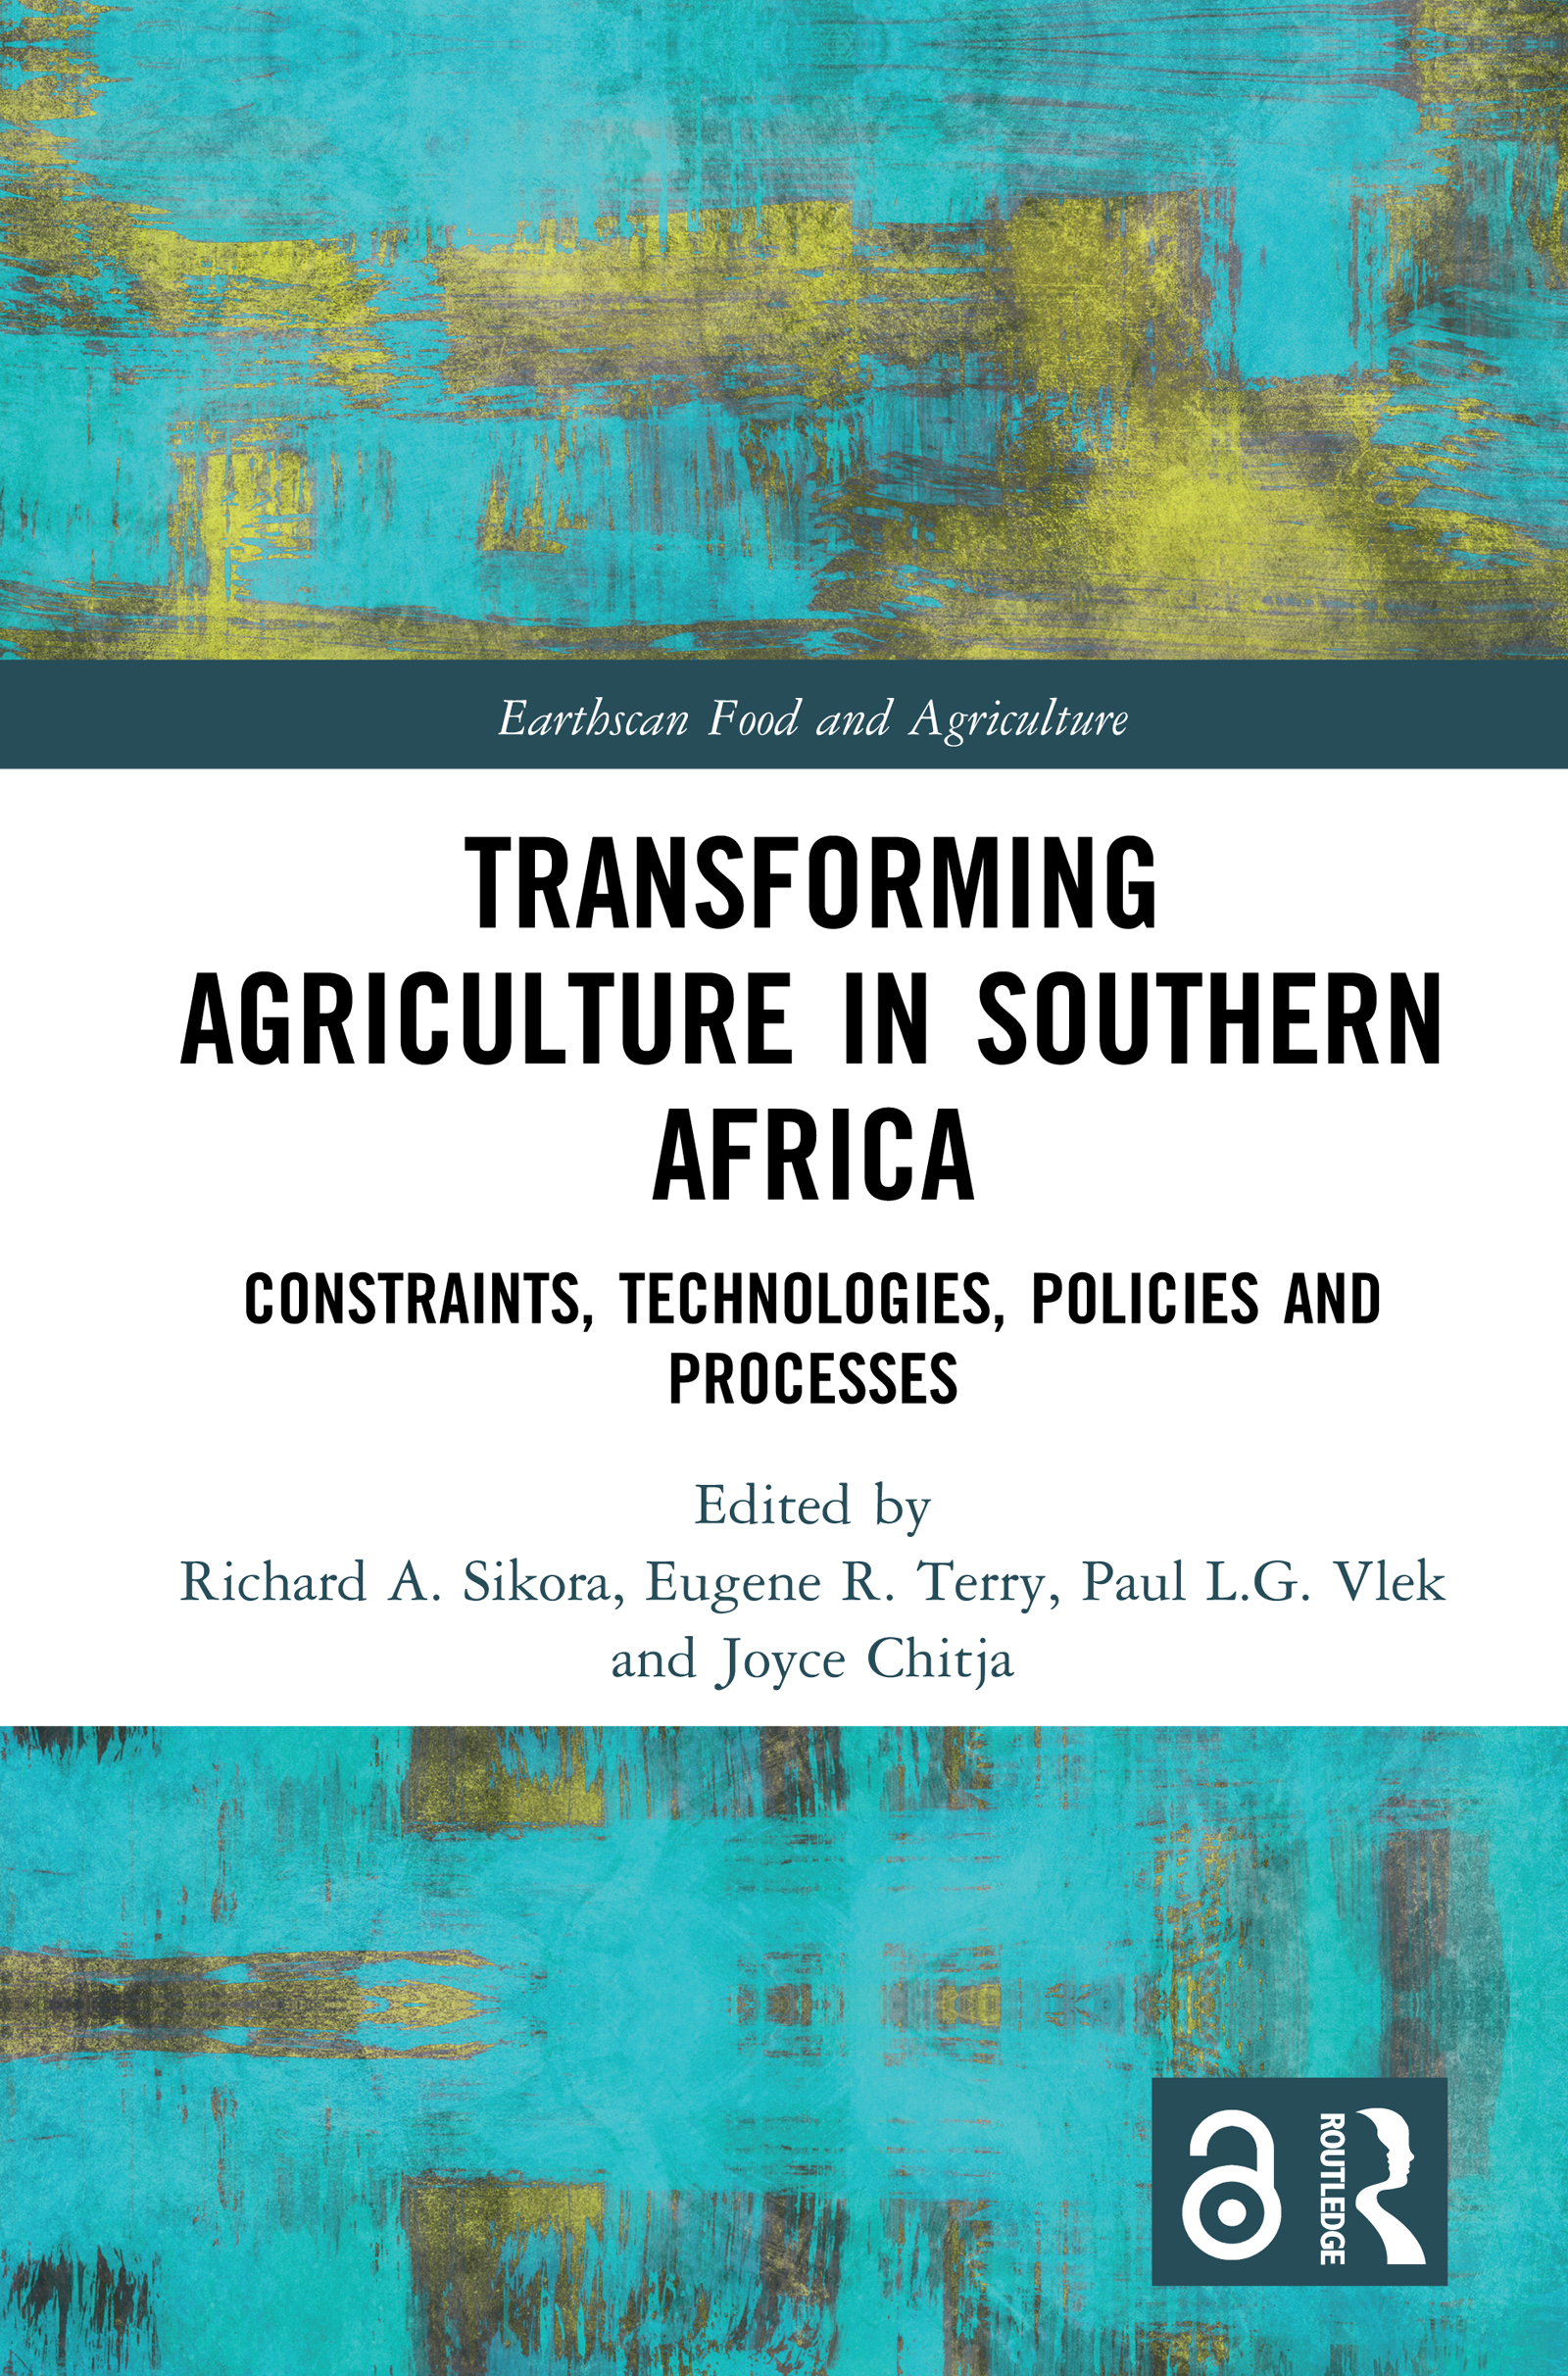 Transforming Agriculture in Southern Africa